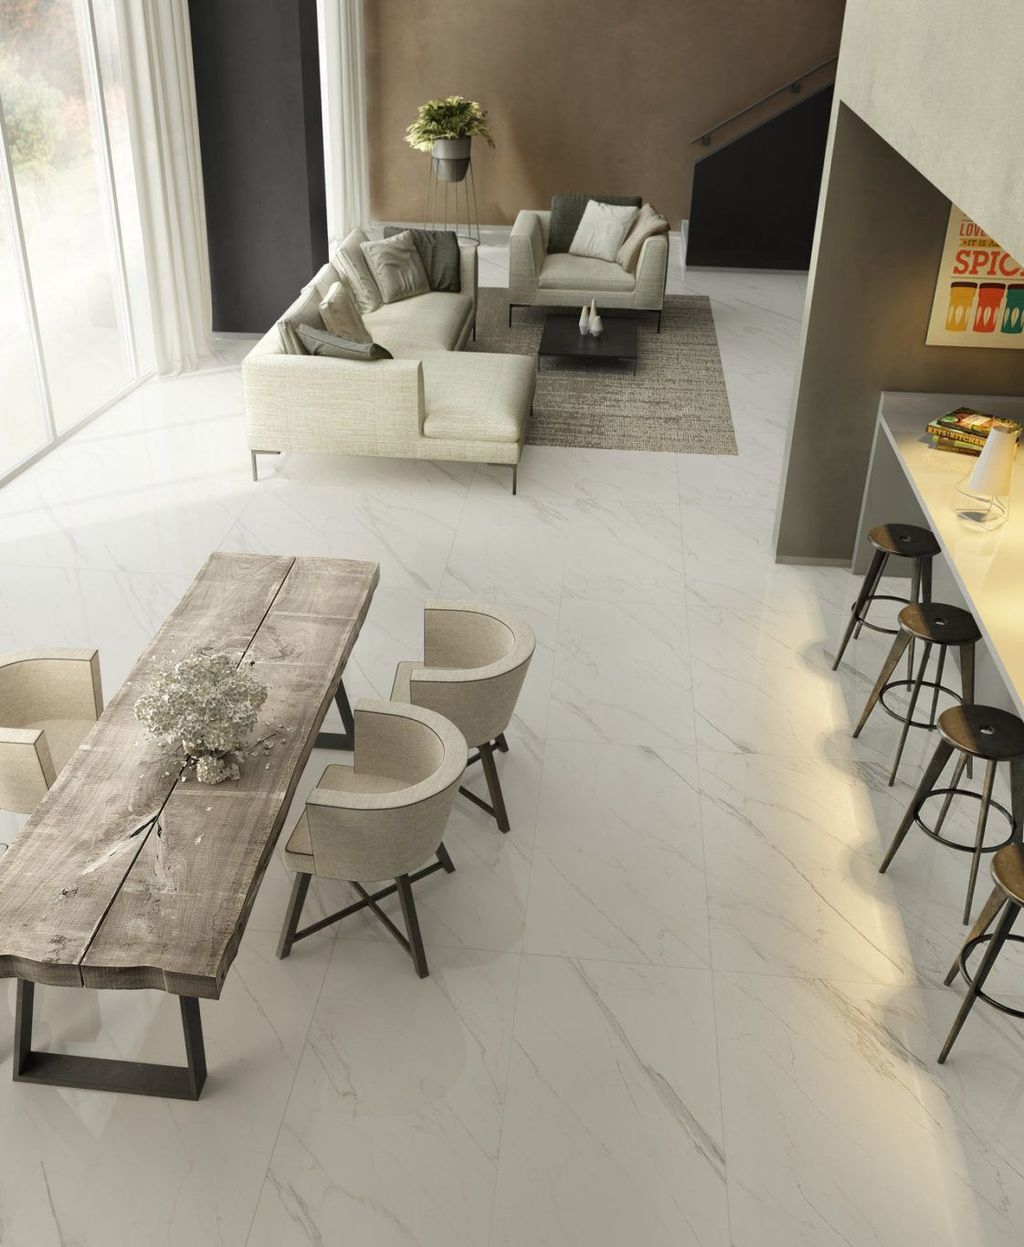 Affordable Marble Tiles Design Ideas In The Wooden Floor02